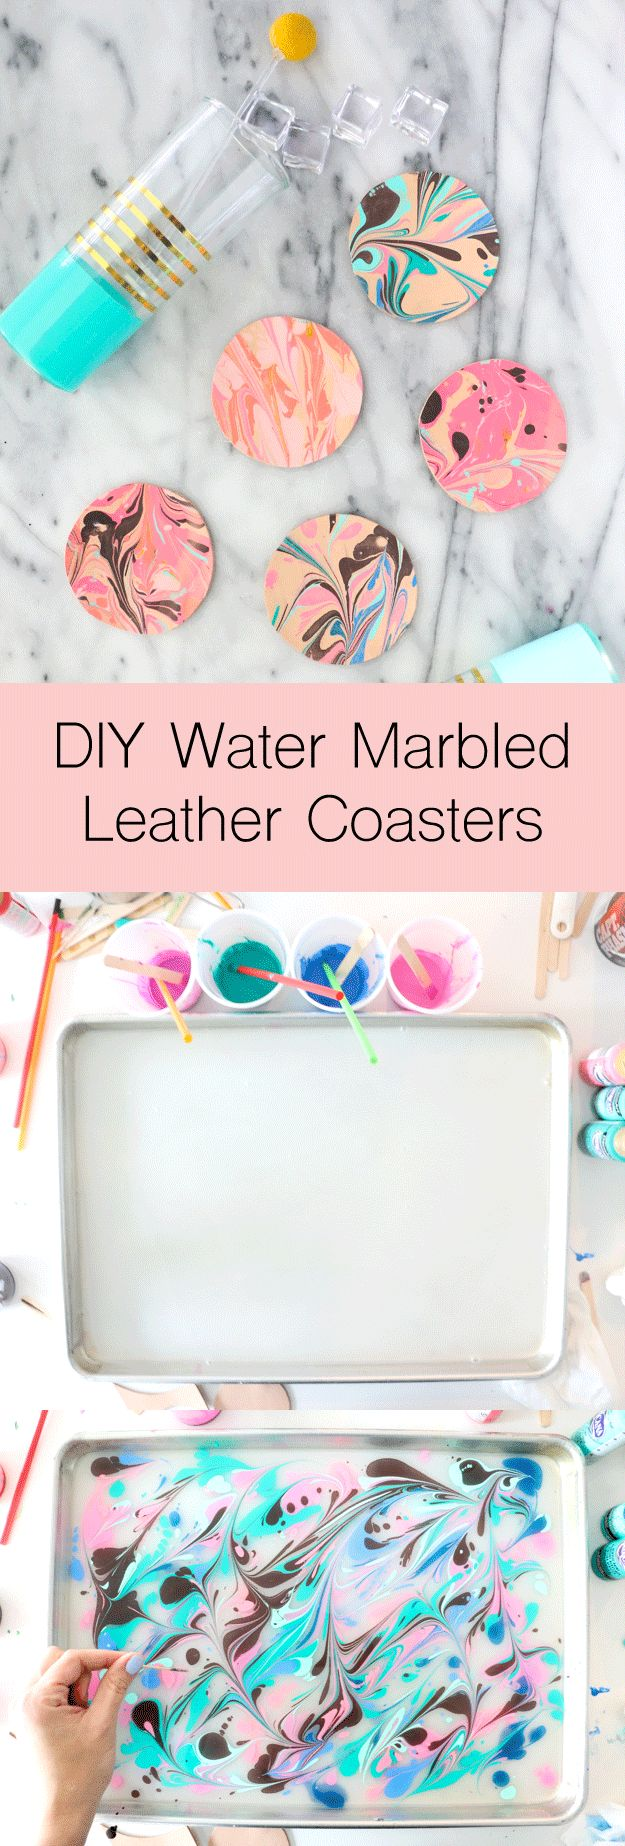 DIY Water Marbled Leather Coasters - A Kailo Chic LifeDIY-Water-Marbled-Leather-...